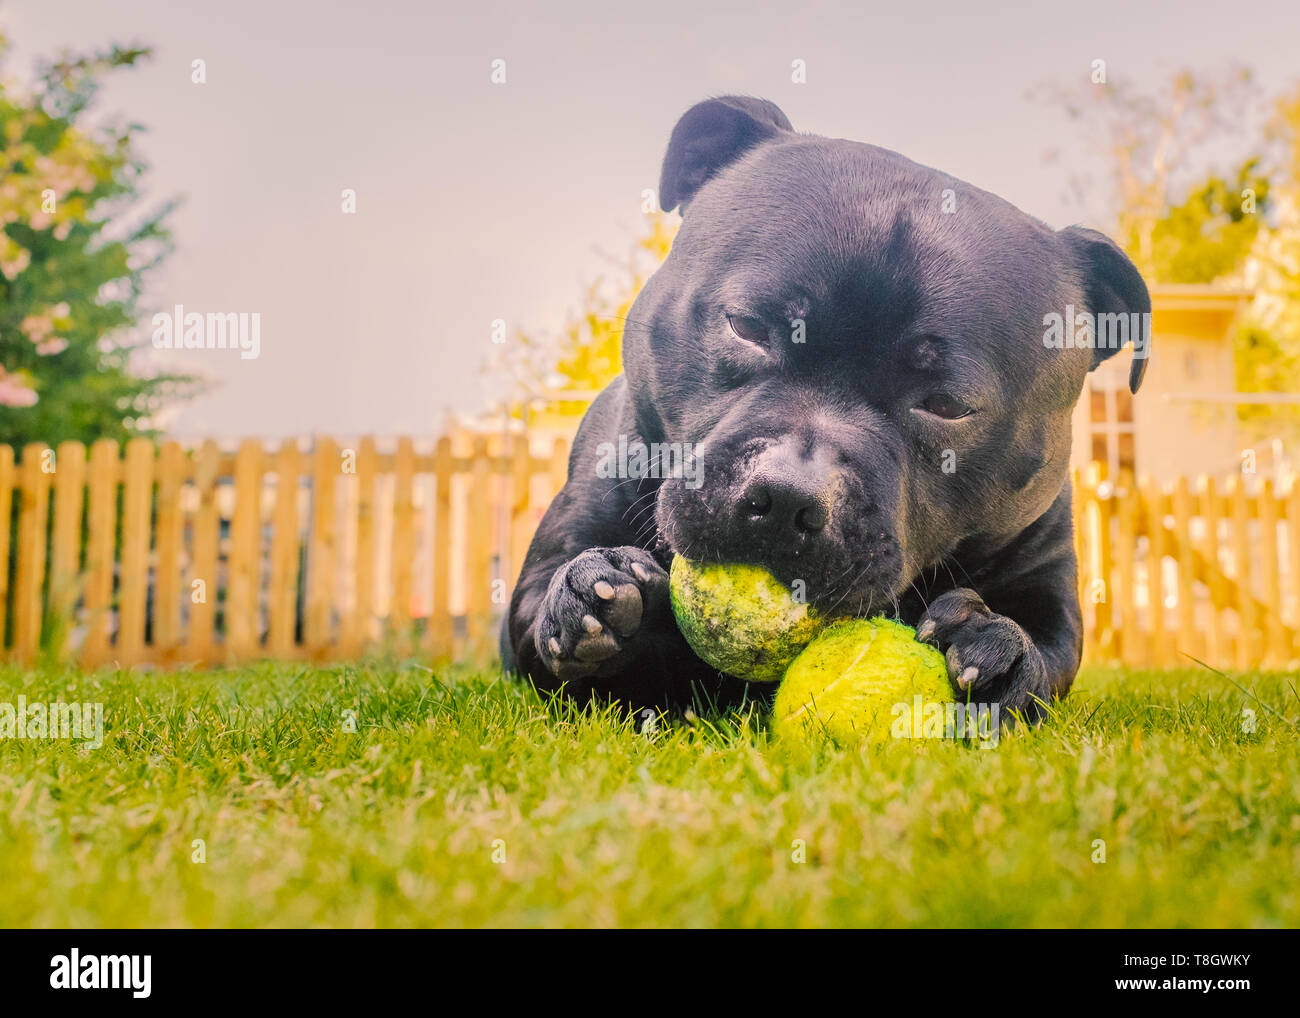 Adorable black handsome Staffordshire Bull Terrier dog lying on grass chewing two tennis balls. There is a picket fence and sky behind him. - Stock Image